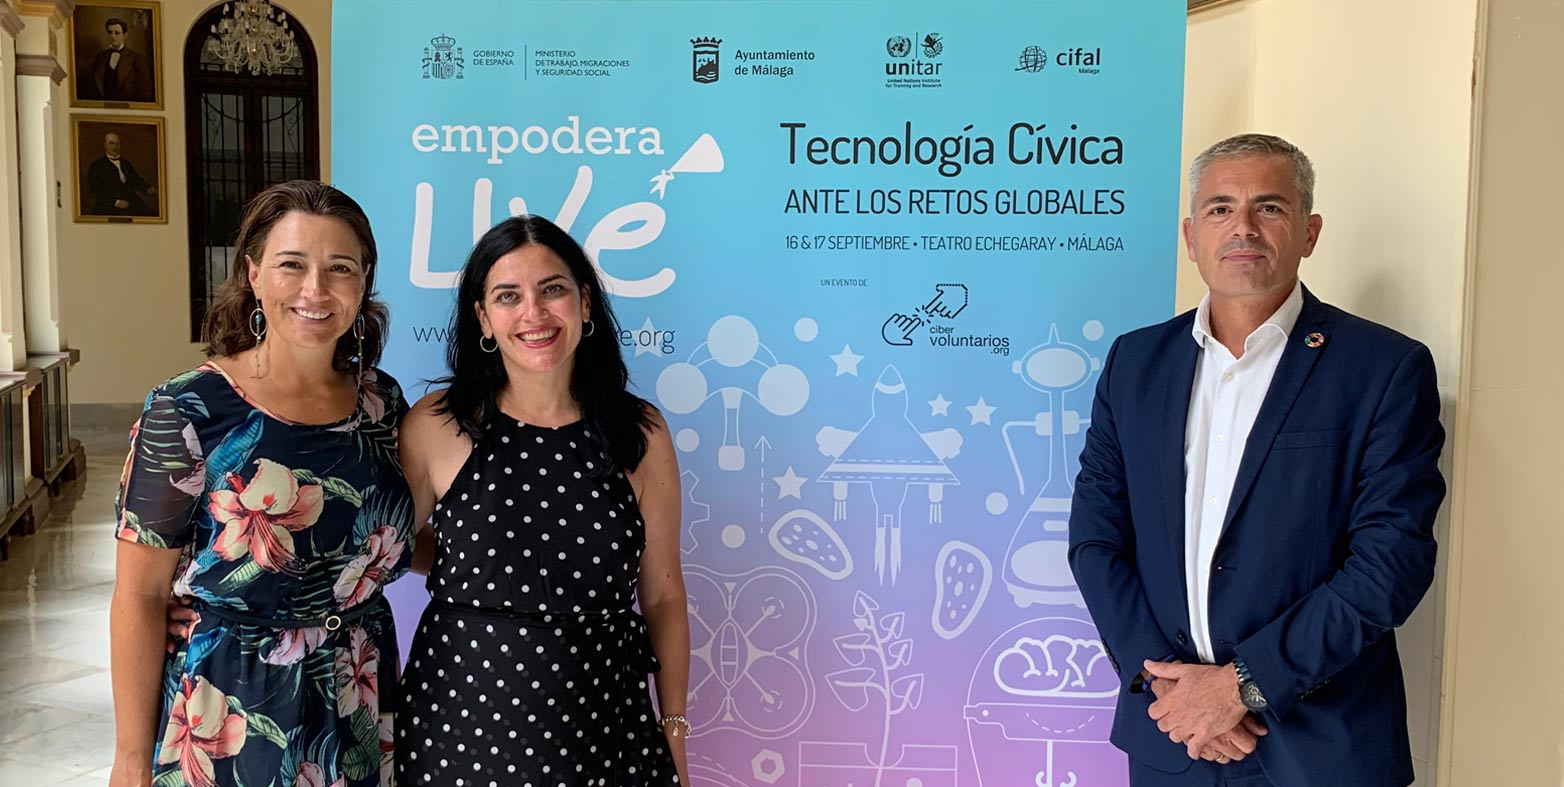 Malaga, meeting point for global experts in civic technology for the global challenges.